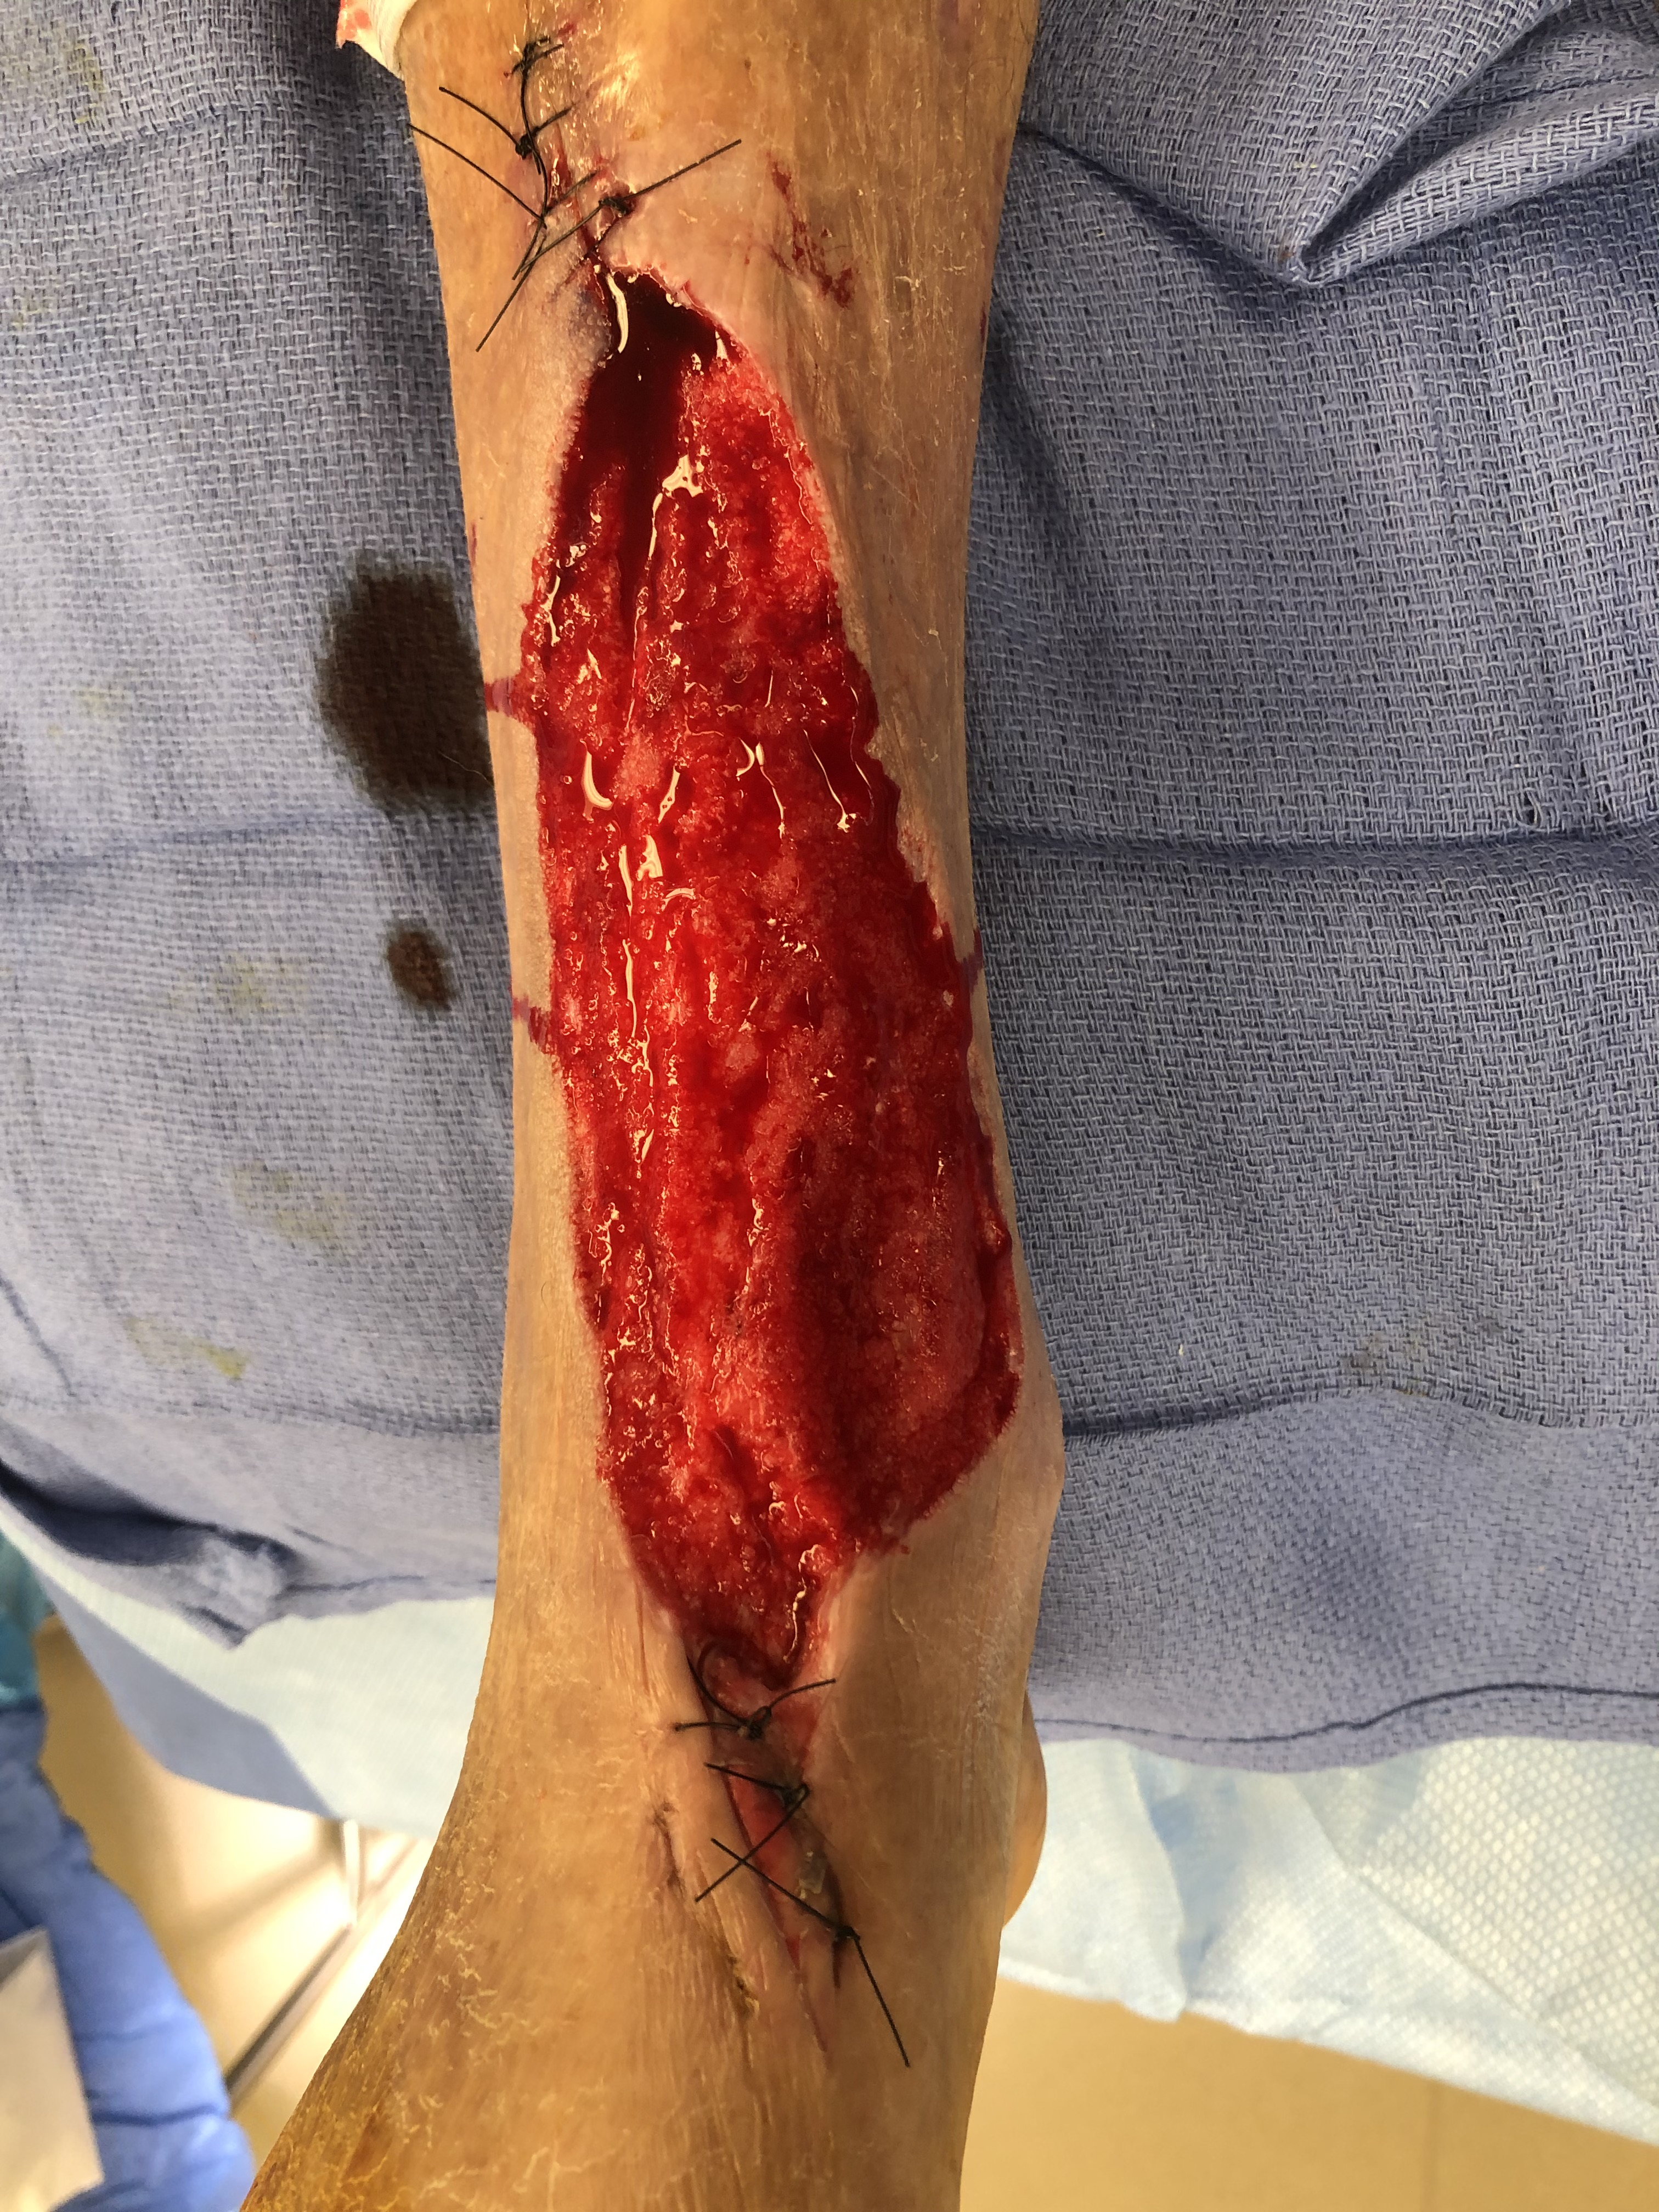 Figure 3A. Status-post debridement and following application of negative pressure wound therapy. (Photo courtesy of Efthymios Gkotsoulias, DPM)